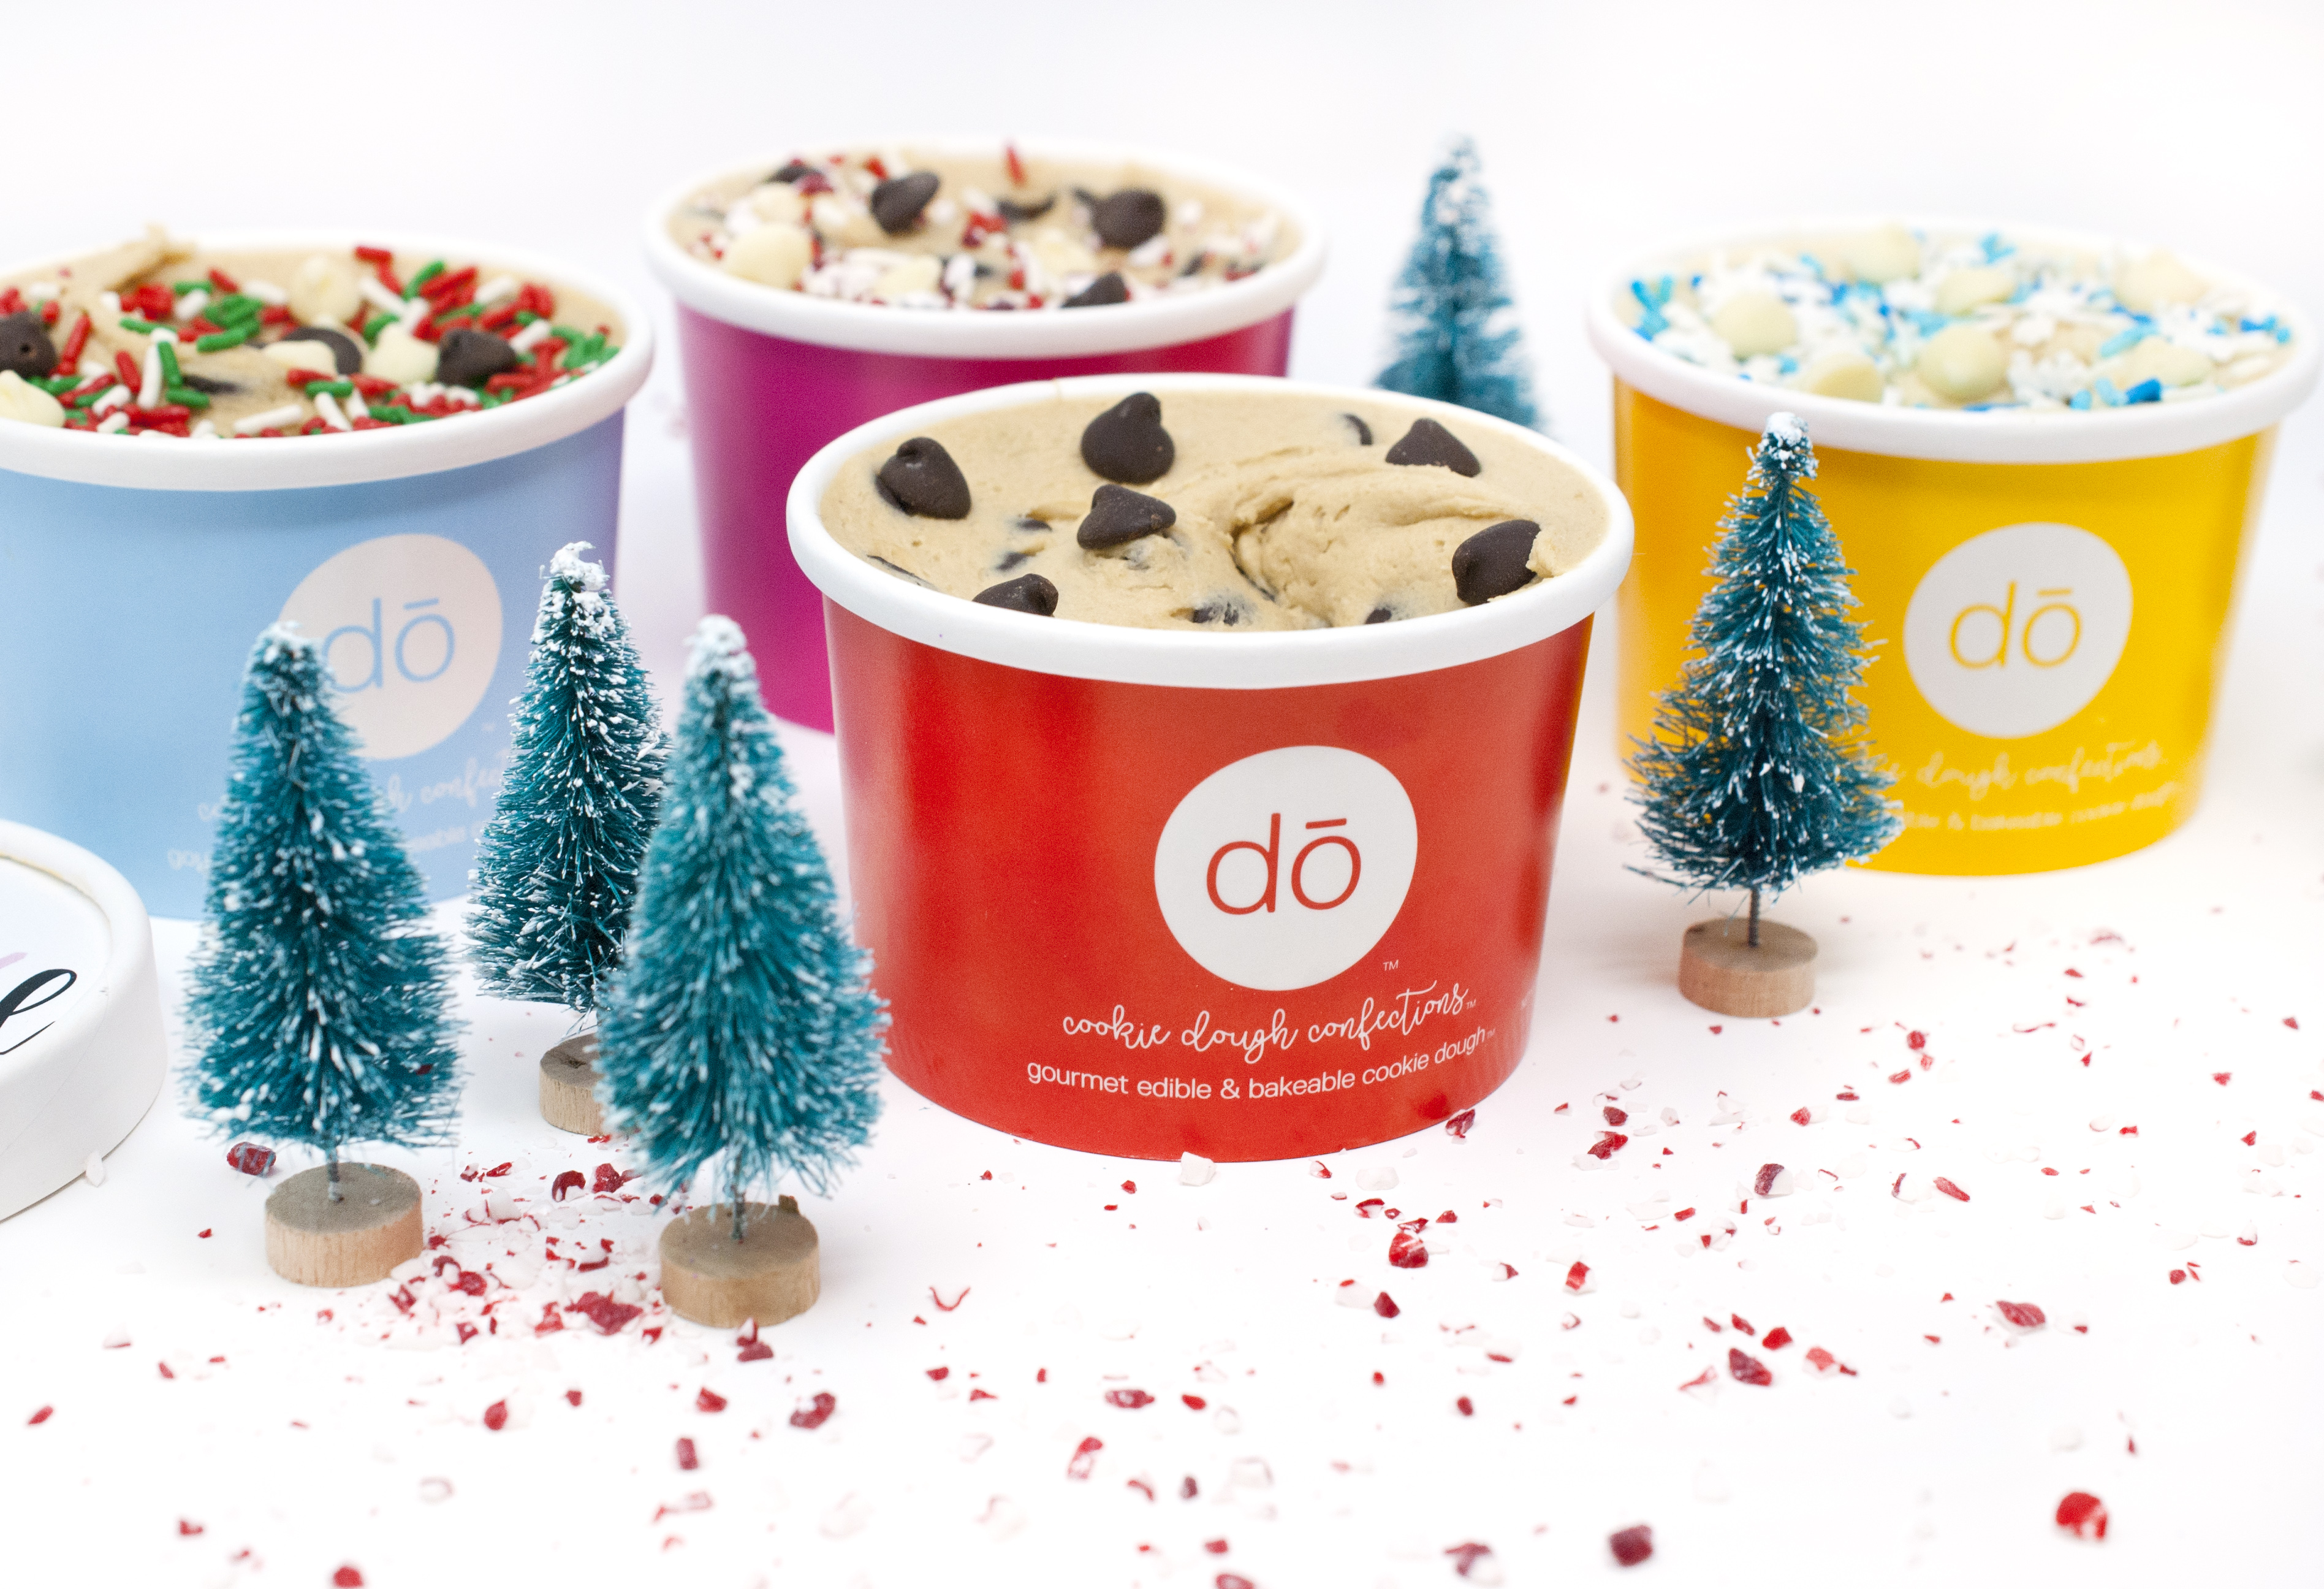 1 DŌ Cookie Dough Confections Naughty and Nice Gift Packs - It's hard to hop on Instagram without seeing edible cookie dough on your feed, and this holiday season the company that started it all — DŌ — released The Naughty List and The Nice List bundles. Each four-pack gift set includes different varieties of safe-to-eat raw cookie dough in festive flavors including signature chocolate chip, holiday cake batter, peppermint bark and winter wonDŌland.